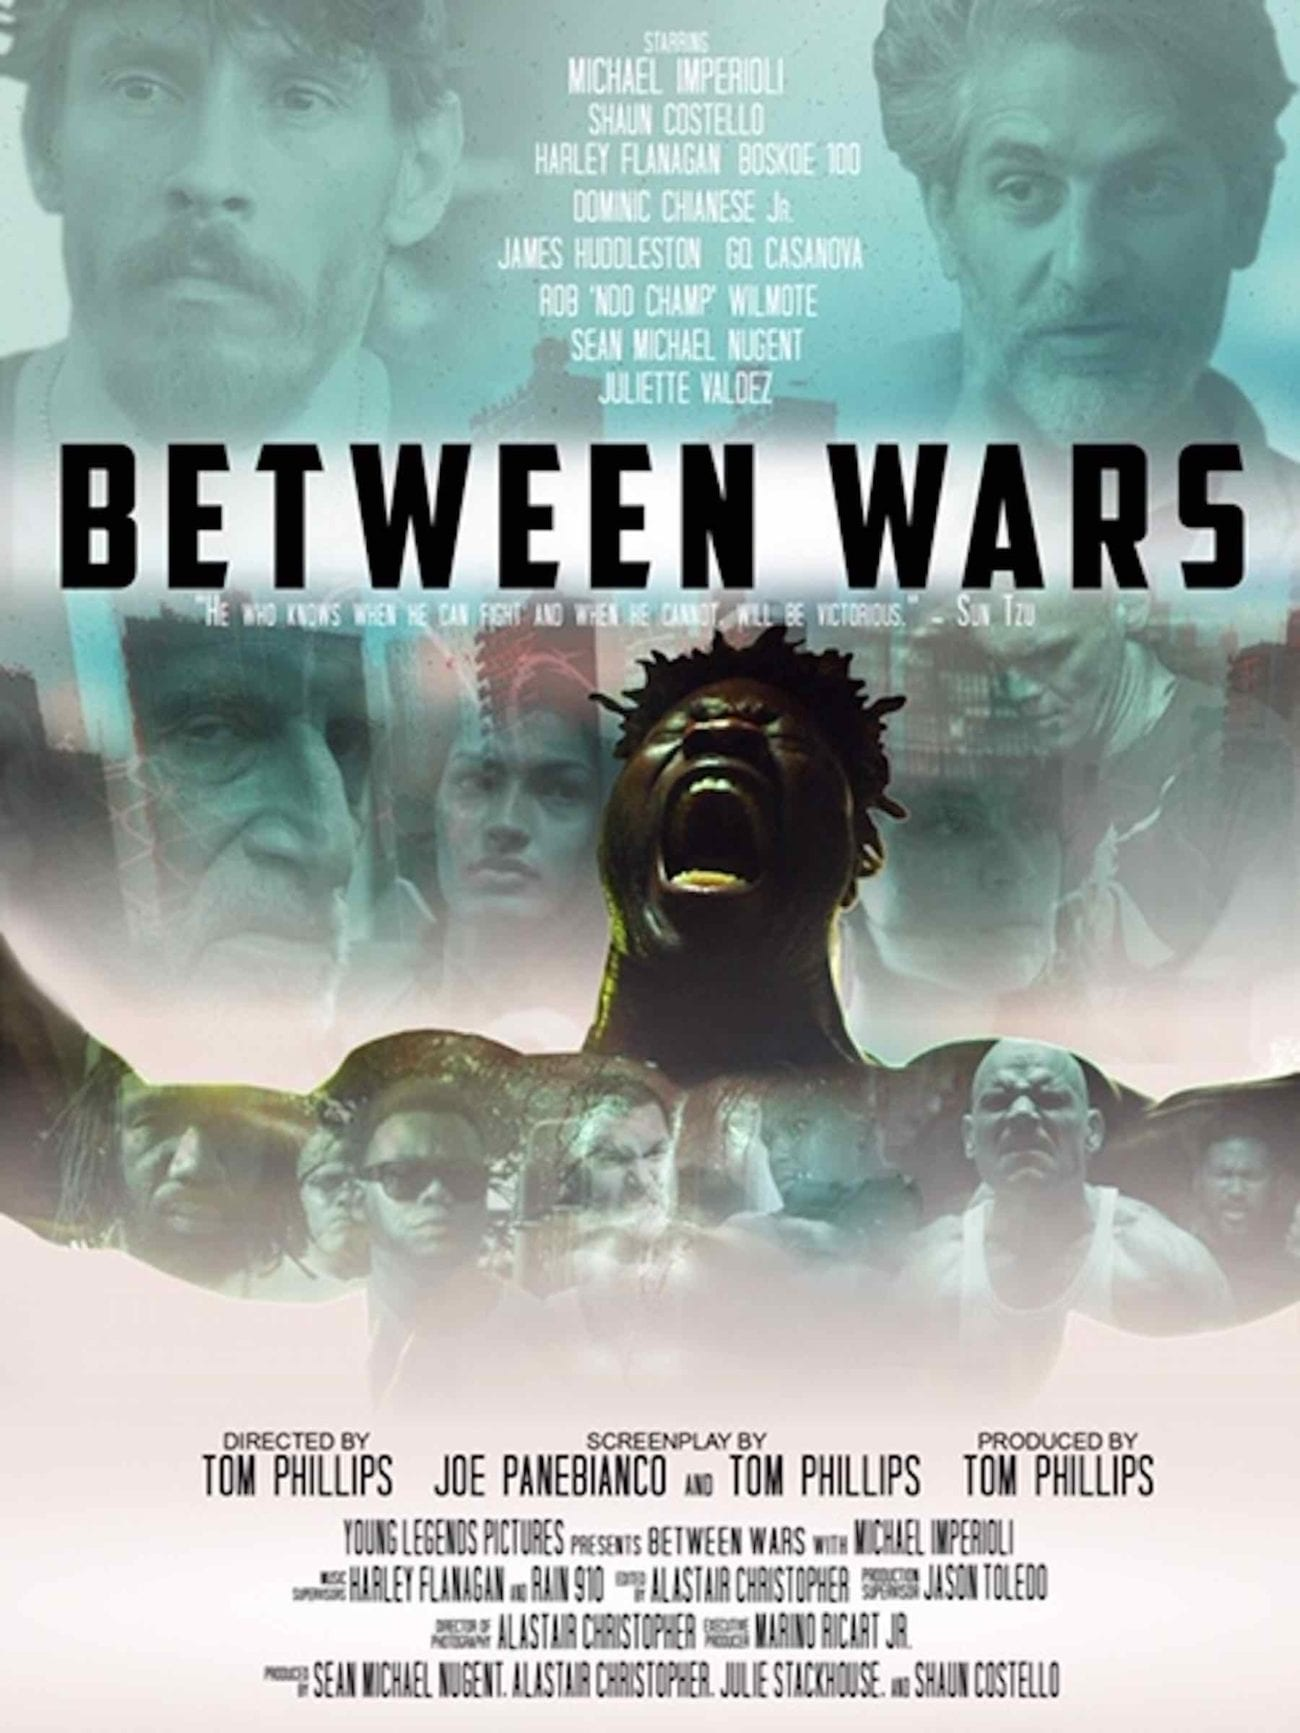 Harley Flanagan's star continues to rise with his role in 'Between Wars'. Here's our interview with punker Harley Flanagan.